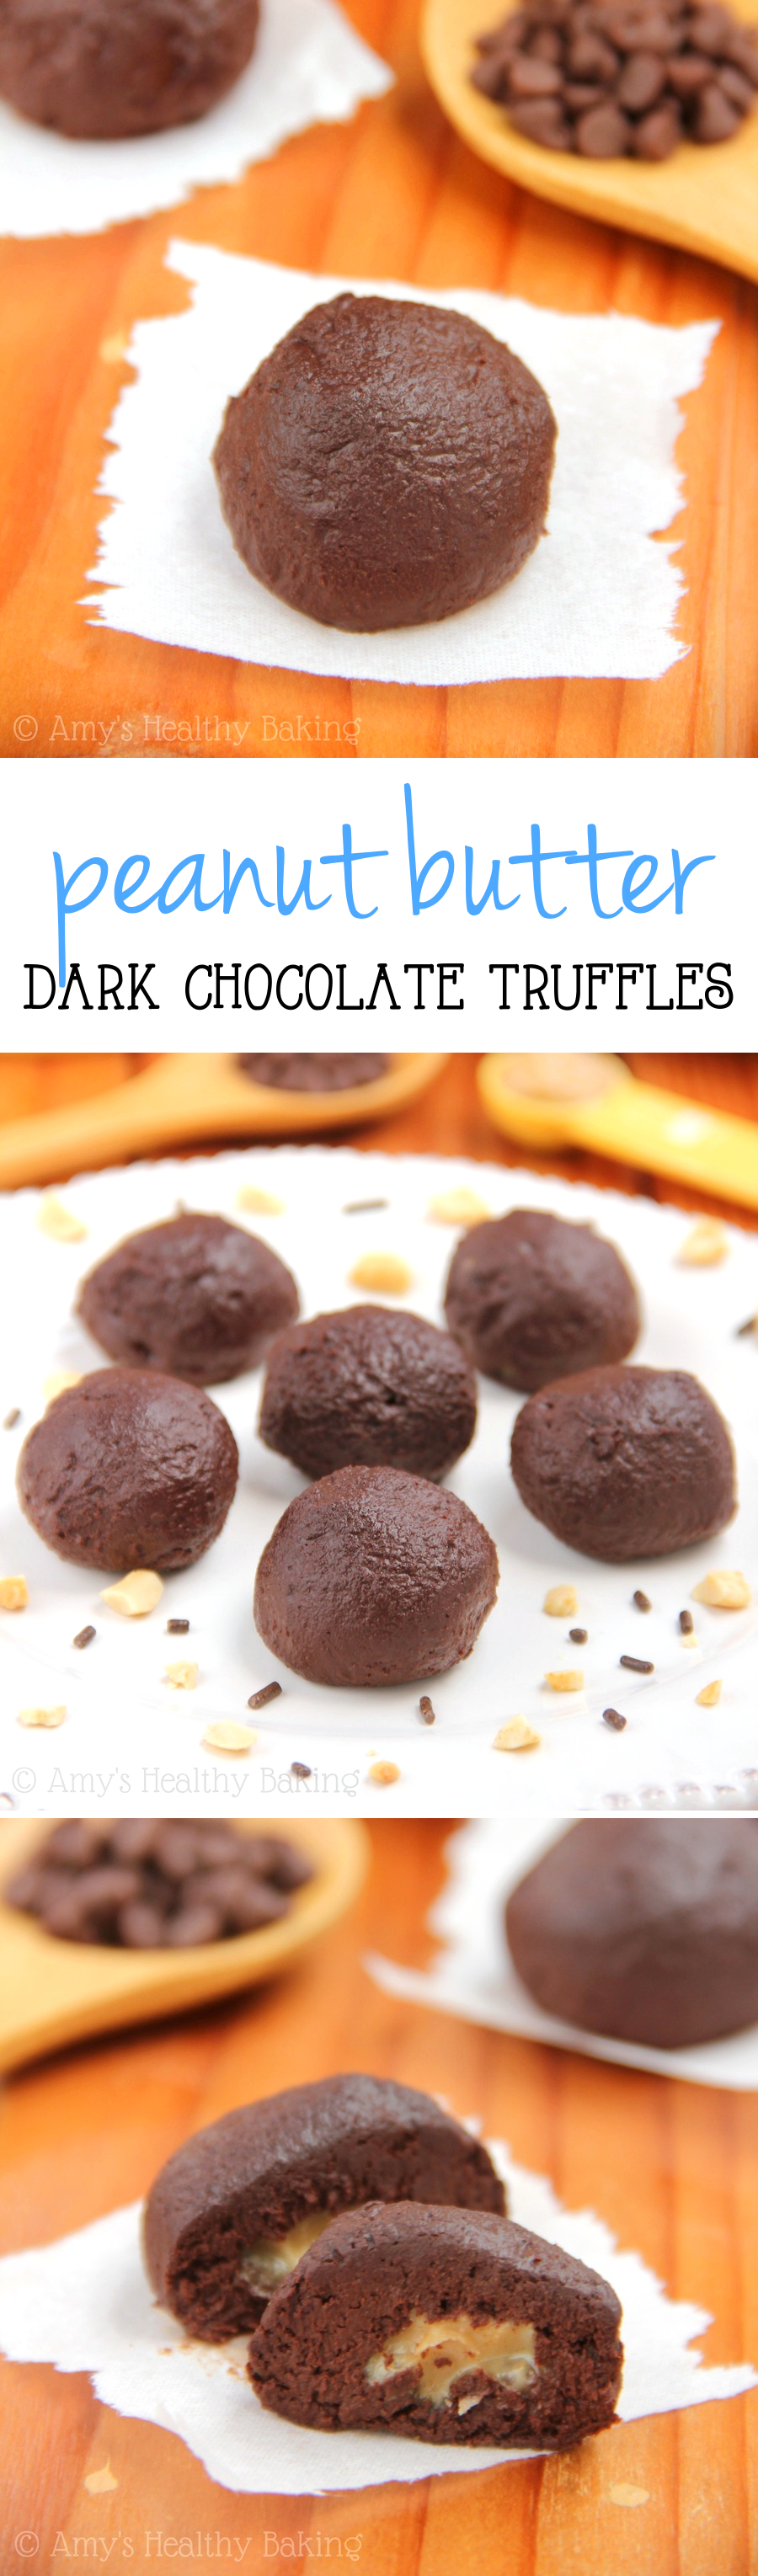 Dark Chocolate Peanut Butter Truffles -- an clean-eating treat made with NO butter or heavy cream! Just 5 healthy ingredients!